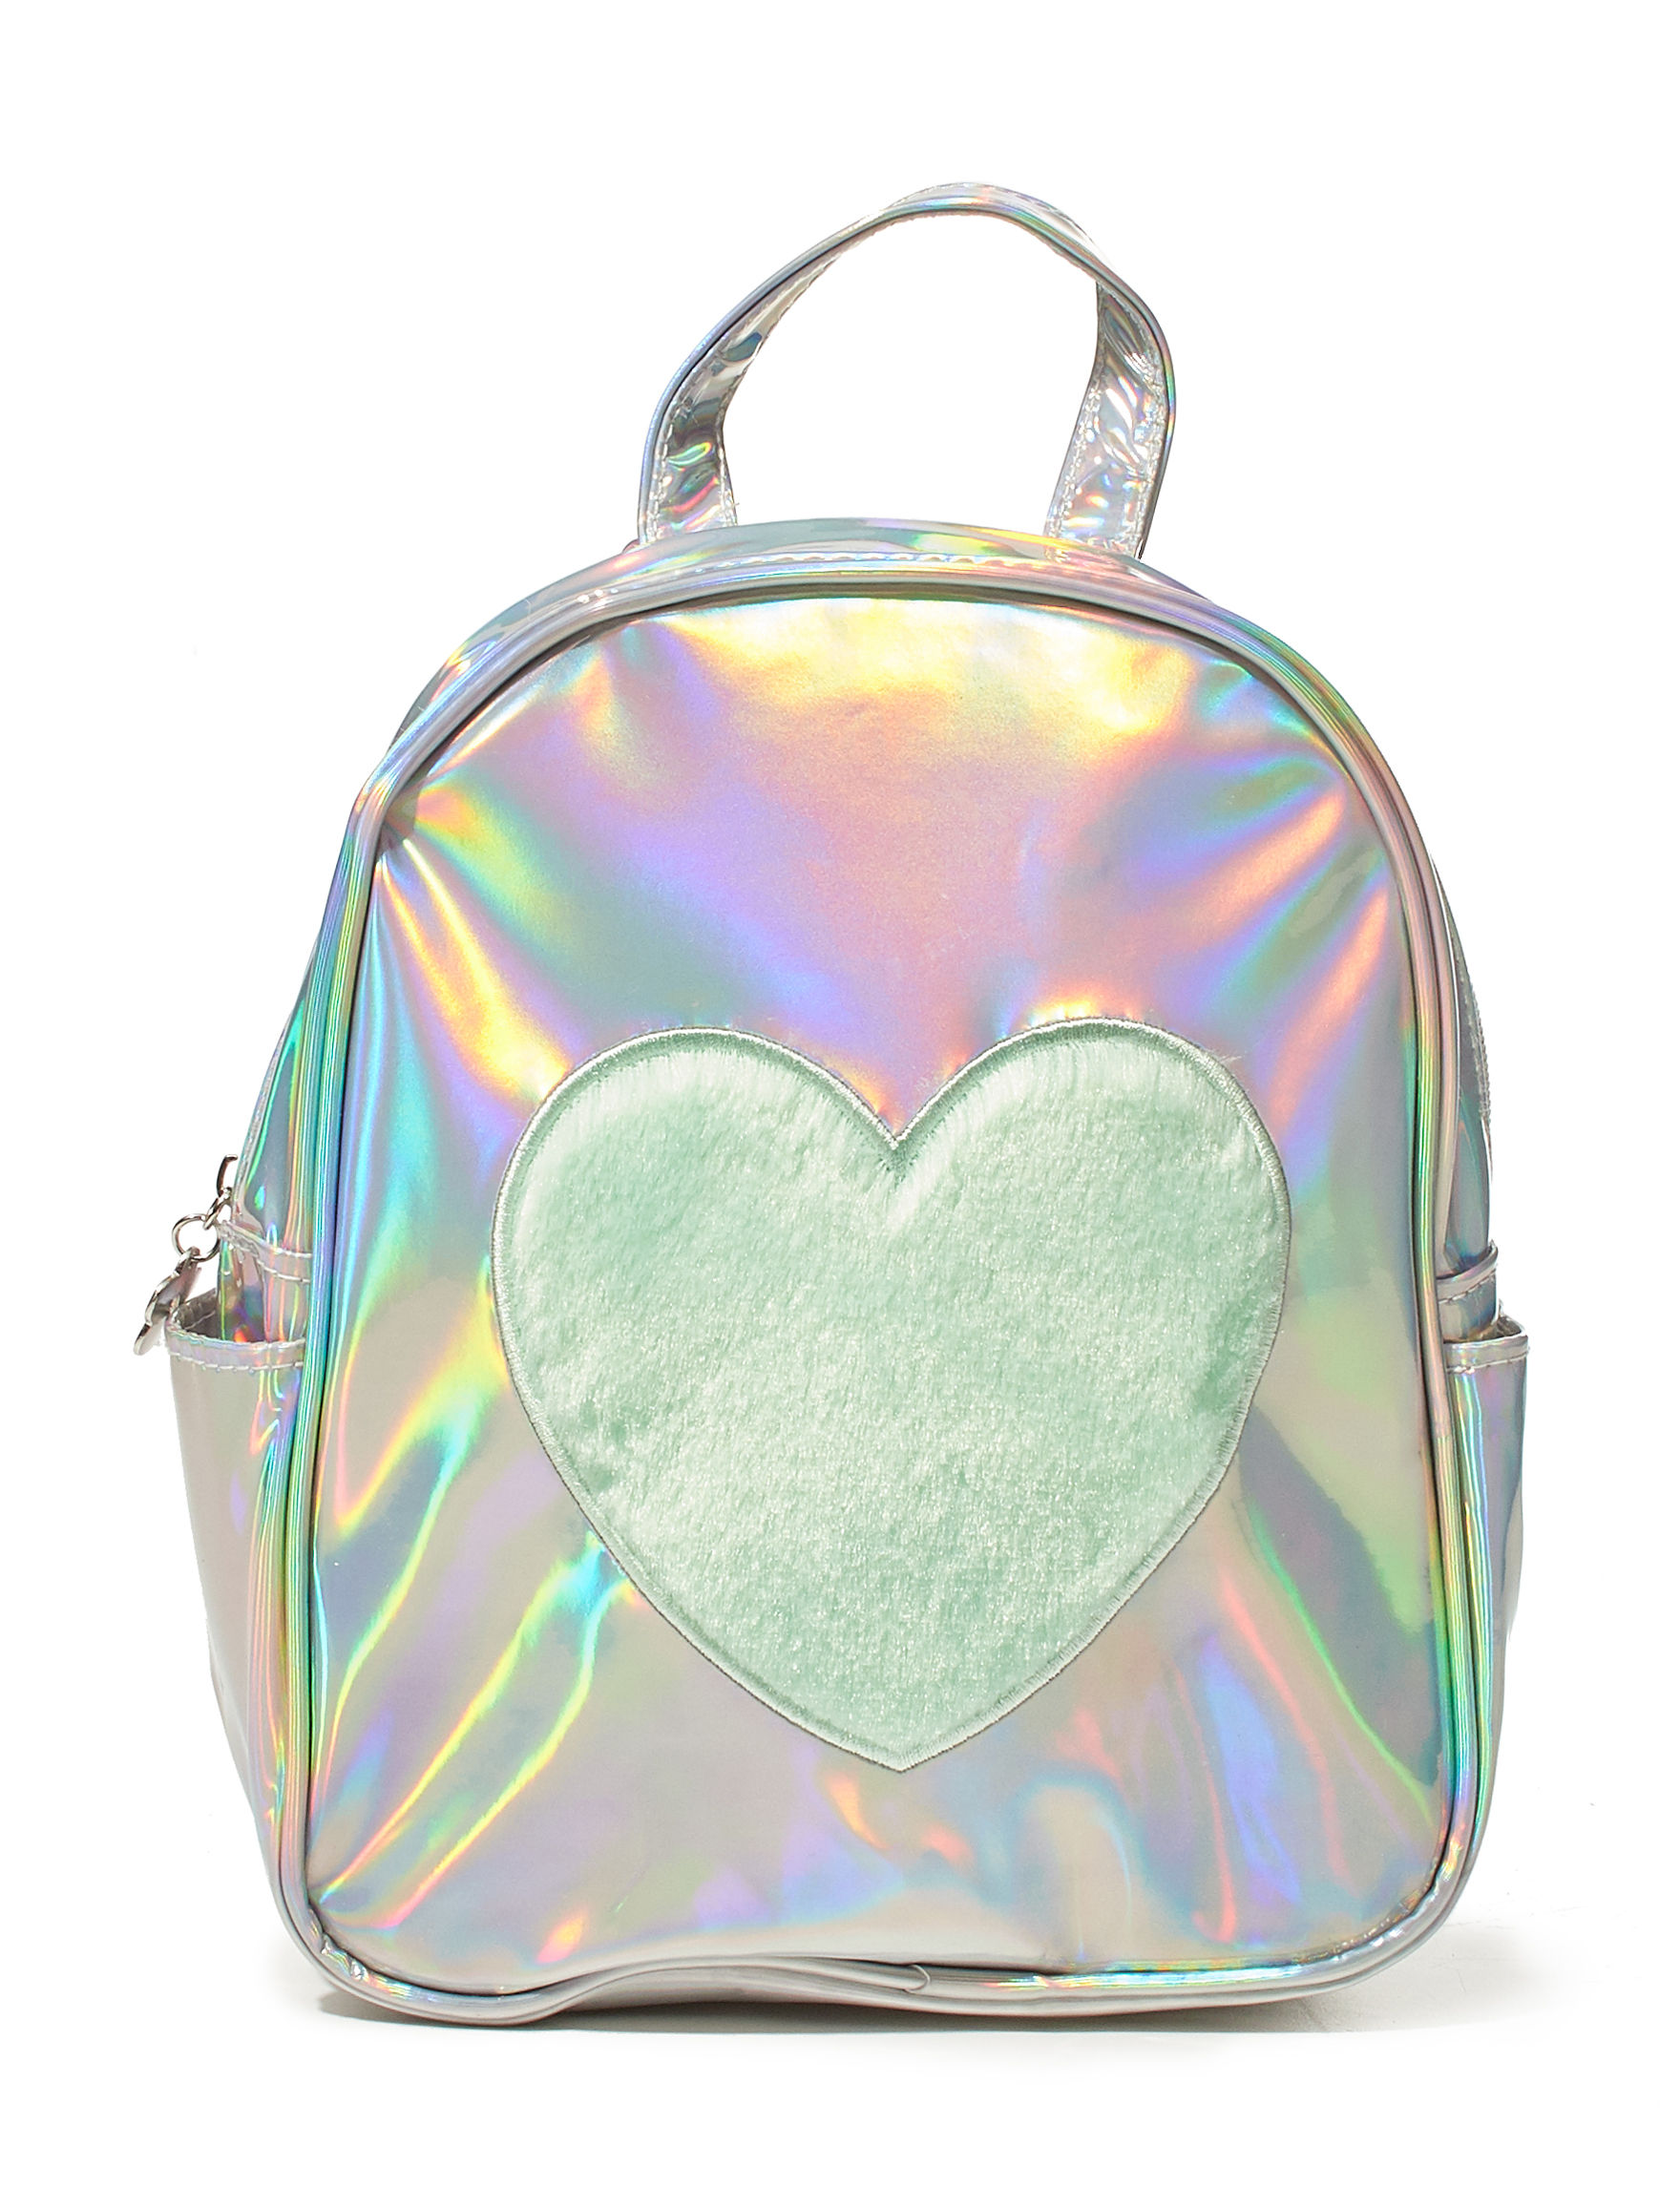 Limited Too Silver Bookbags & Backpacks